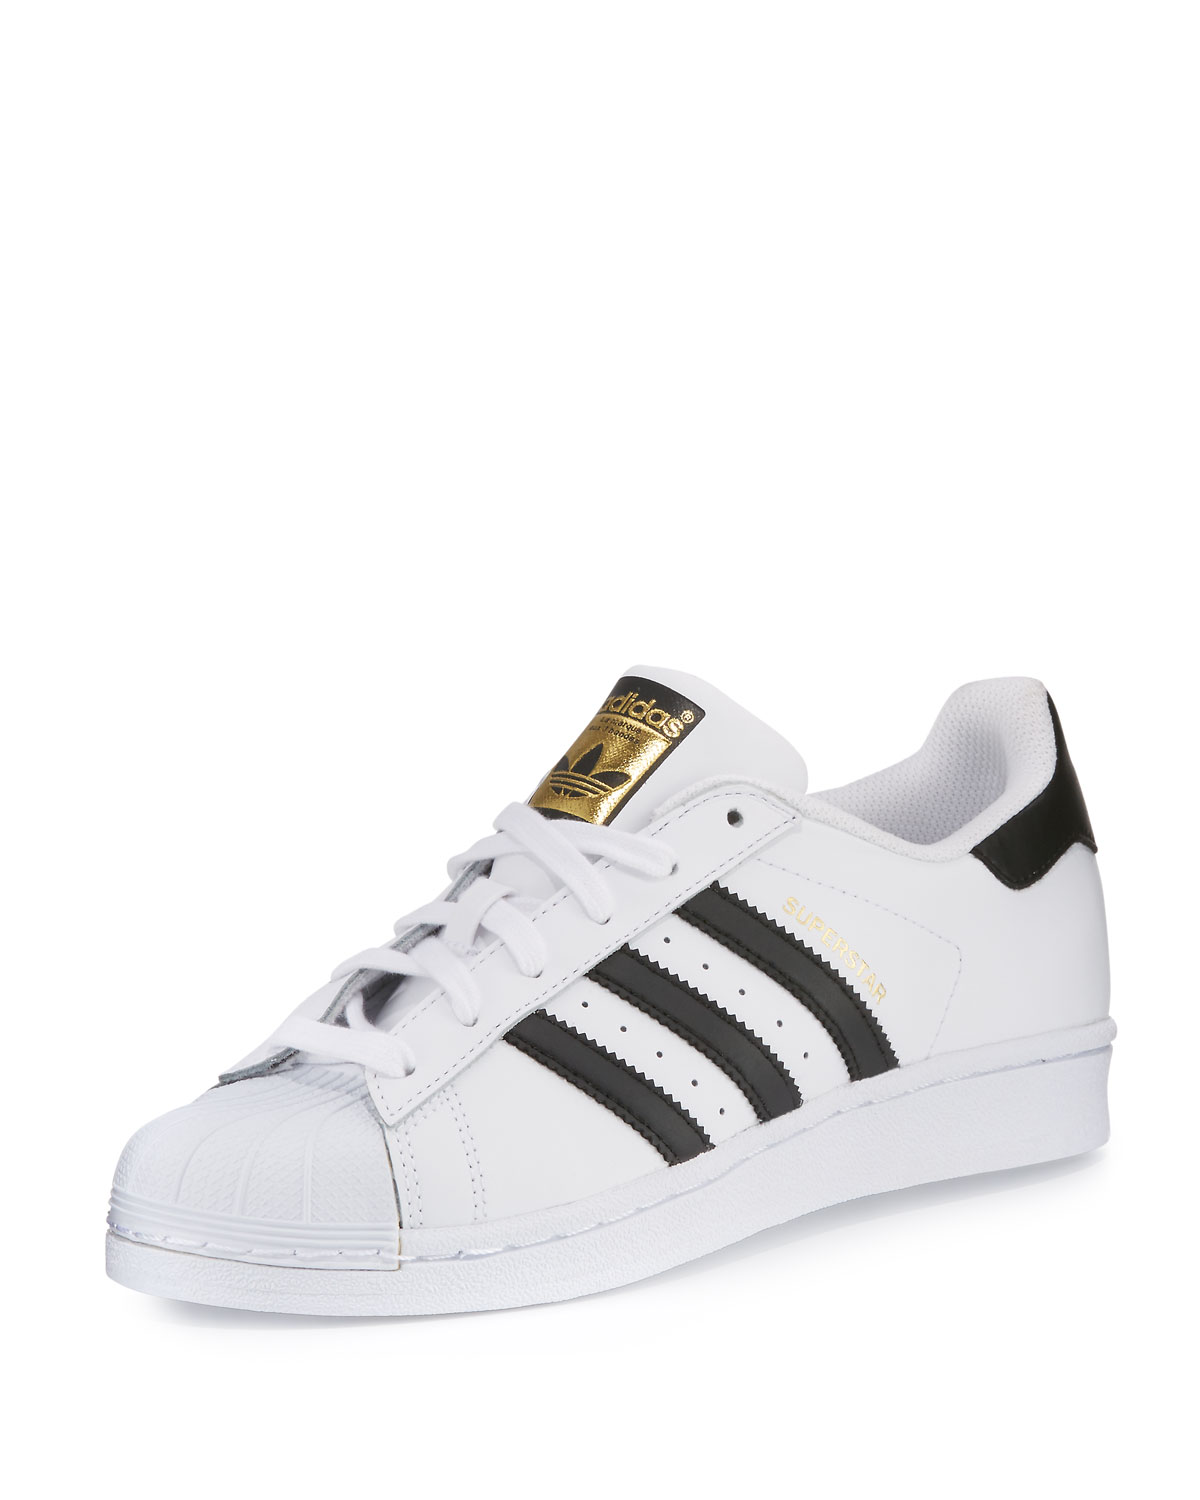 8dfbfe2f1ede Adidas Men s Superstar Classic Leather Sneakers